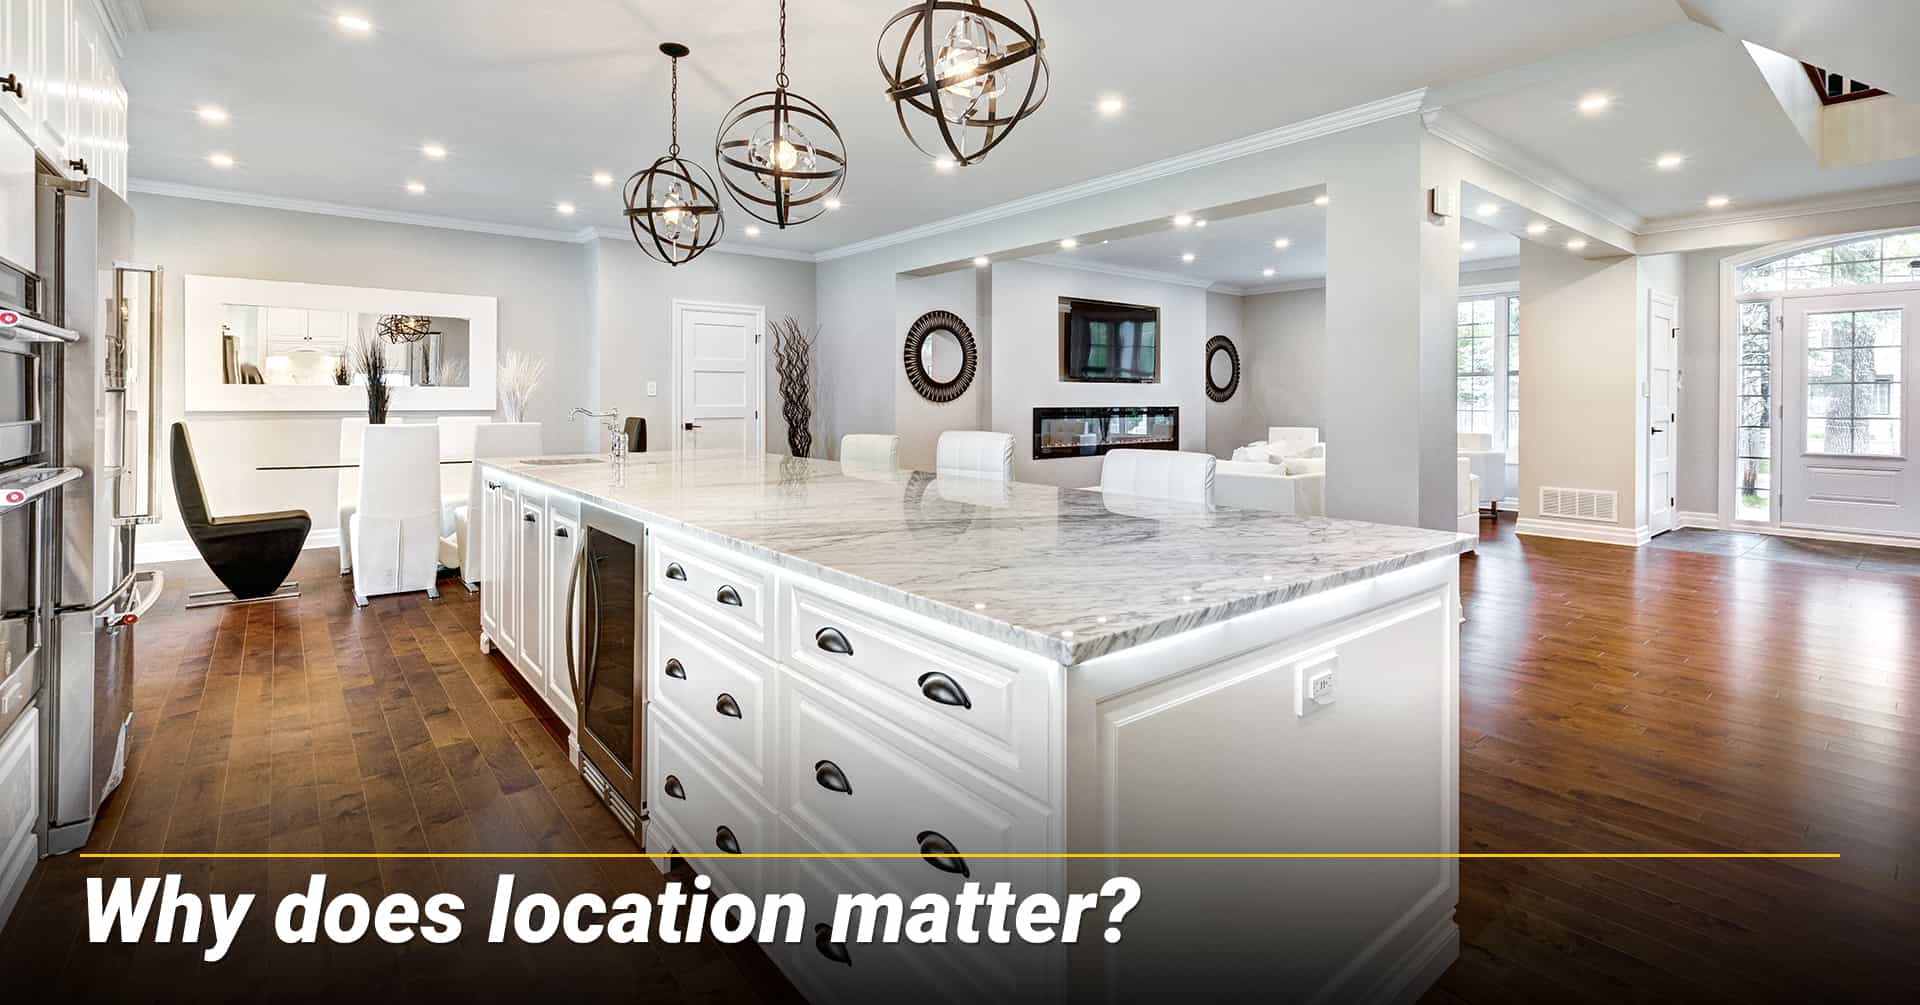 Why does location matter?